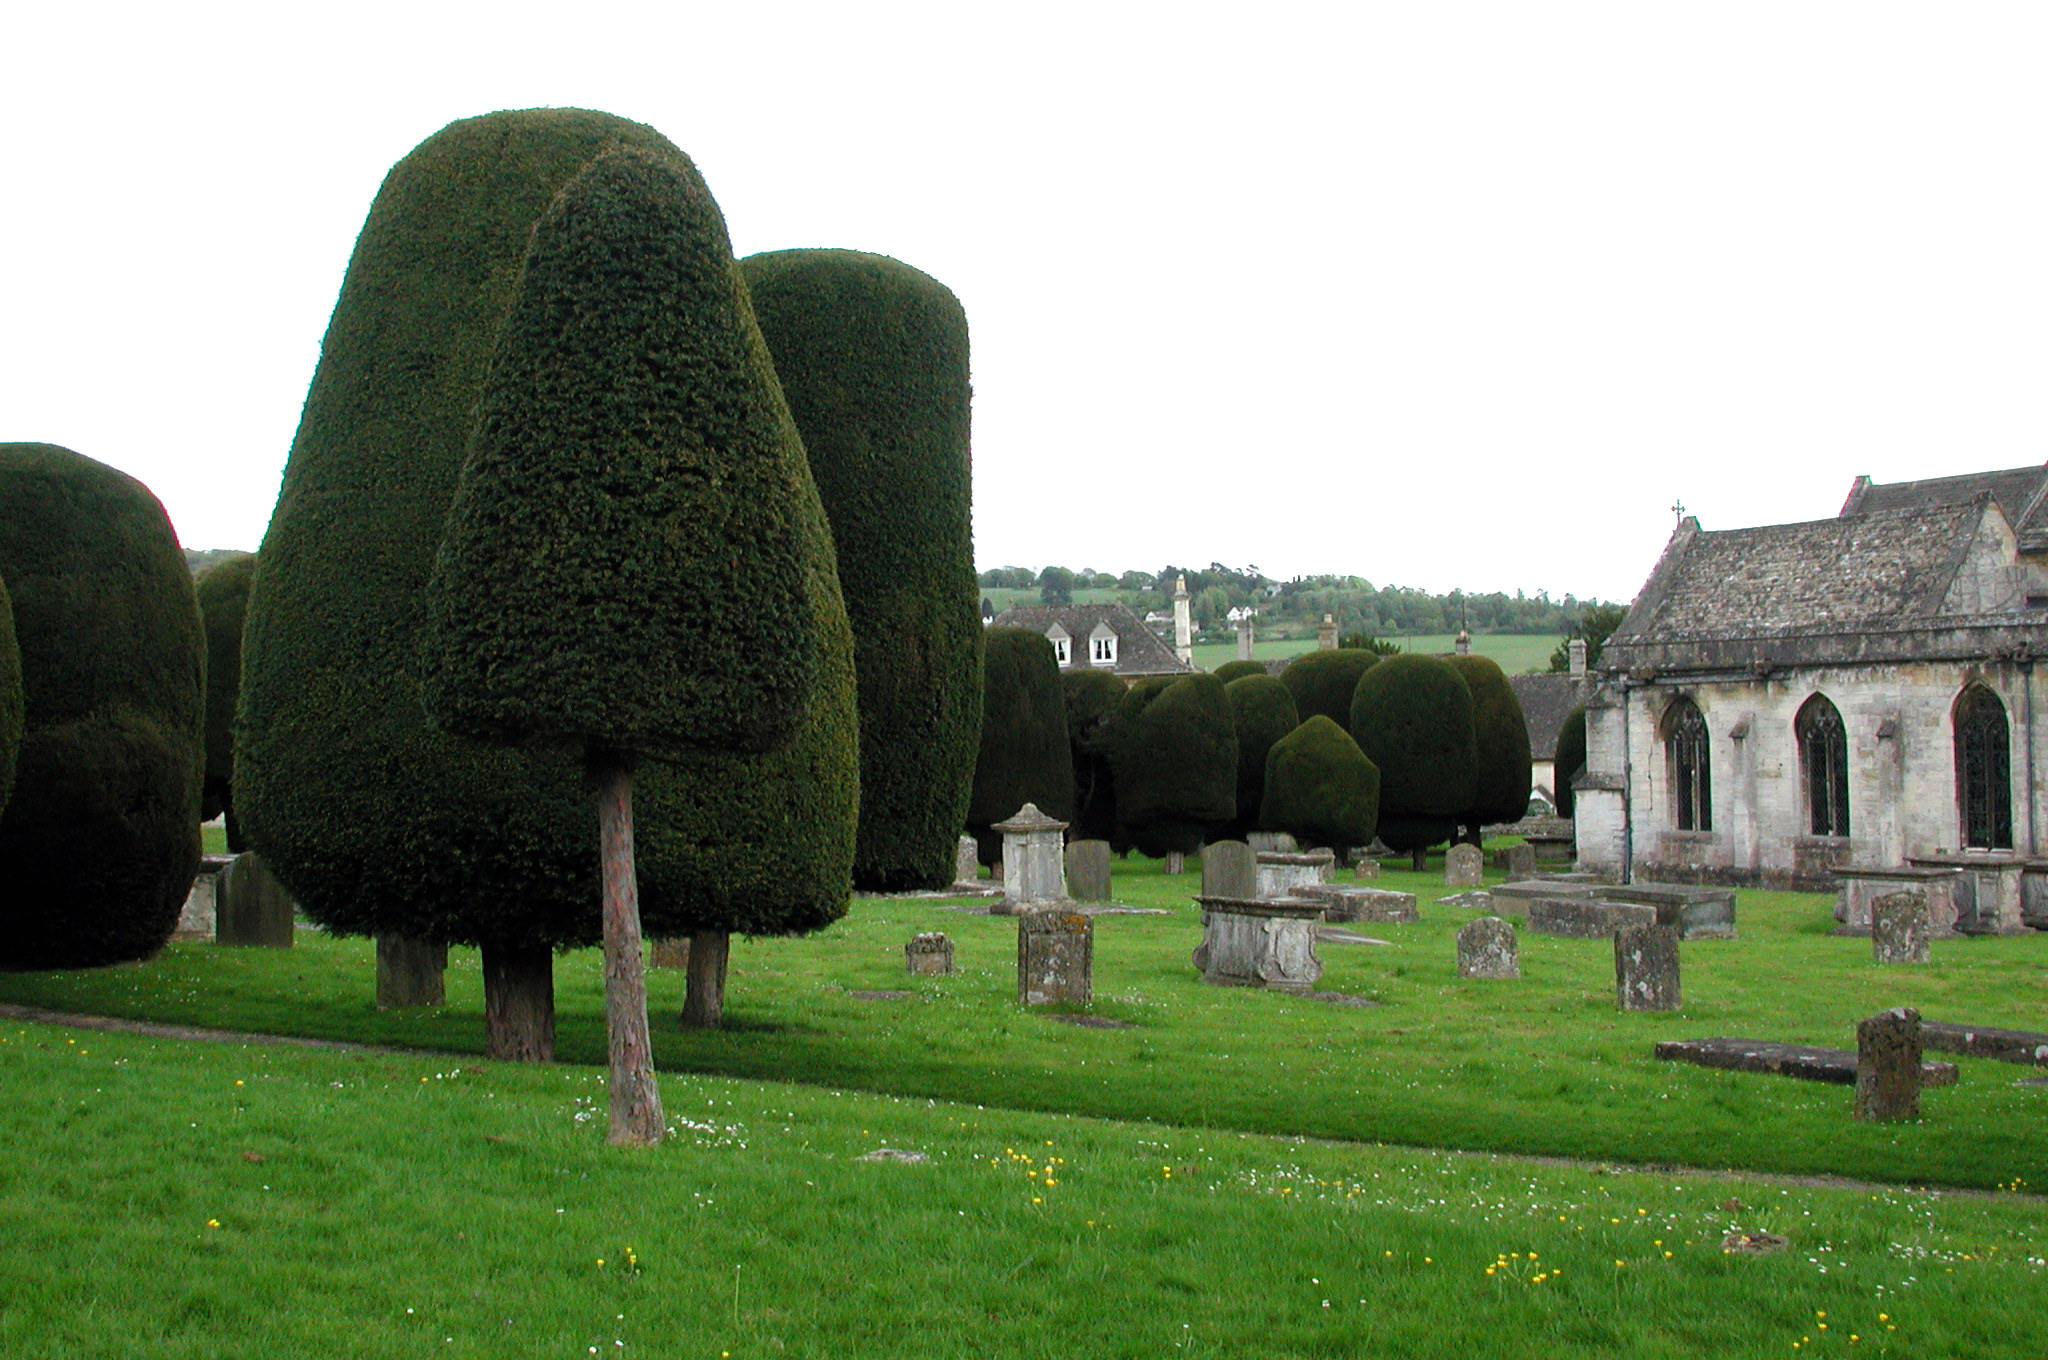 The St Mary's Parish churchyard in Painswick, Gloucestershire, is notable for its ancient and numerous yew trees. Photo taken on May 8, 2005.